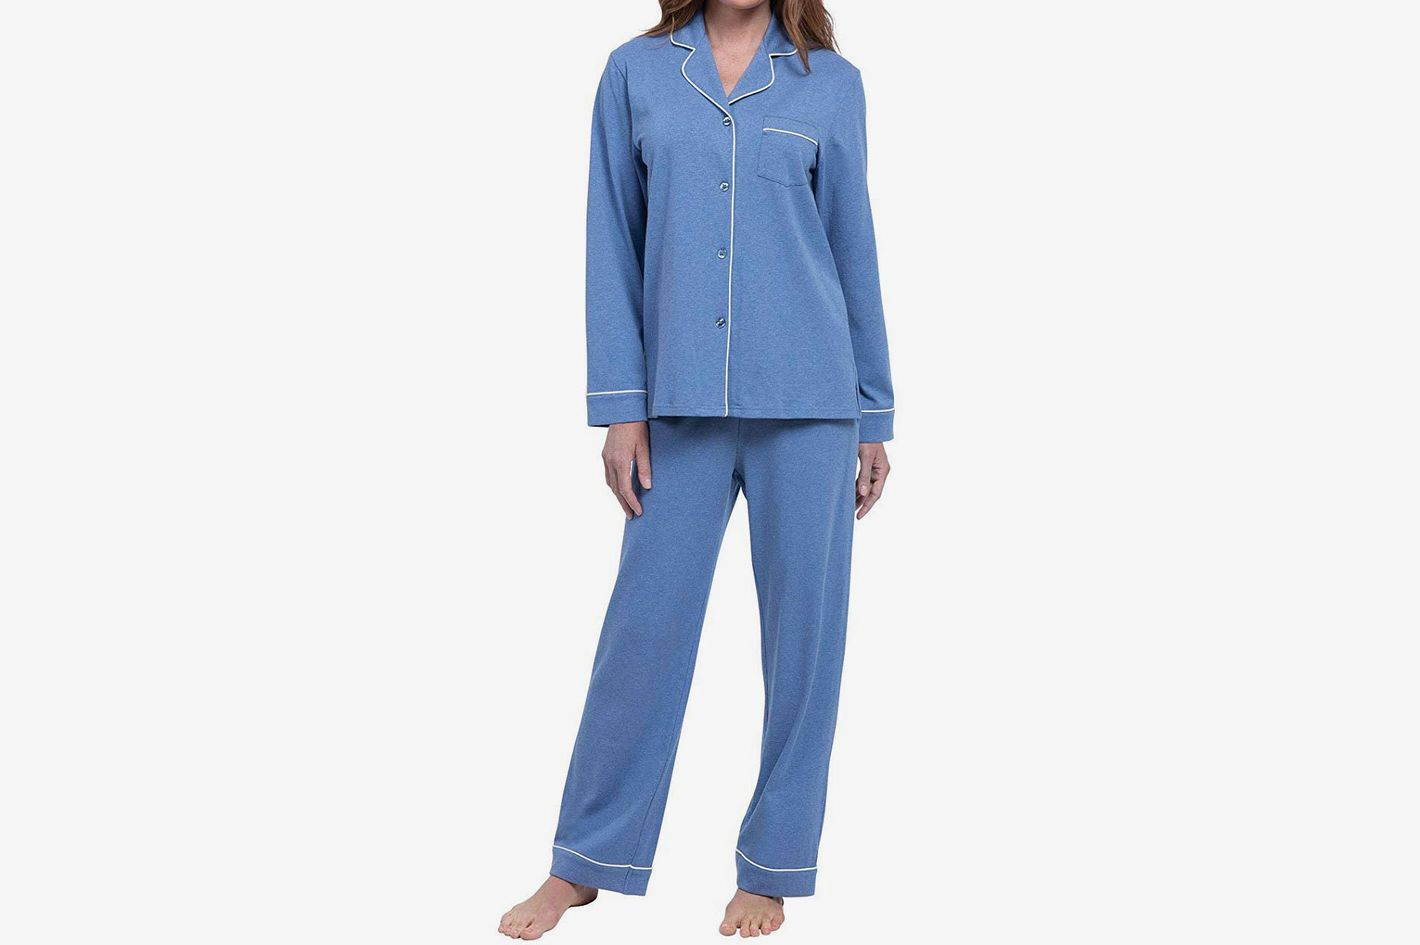 27f063dc1a PajamaGram Pajamas for Women - Cotton Jersey Womens Pajamas